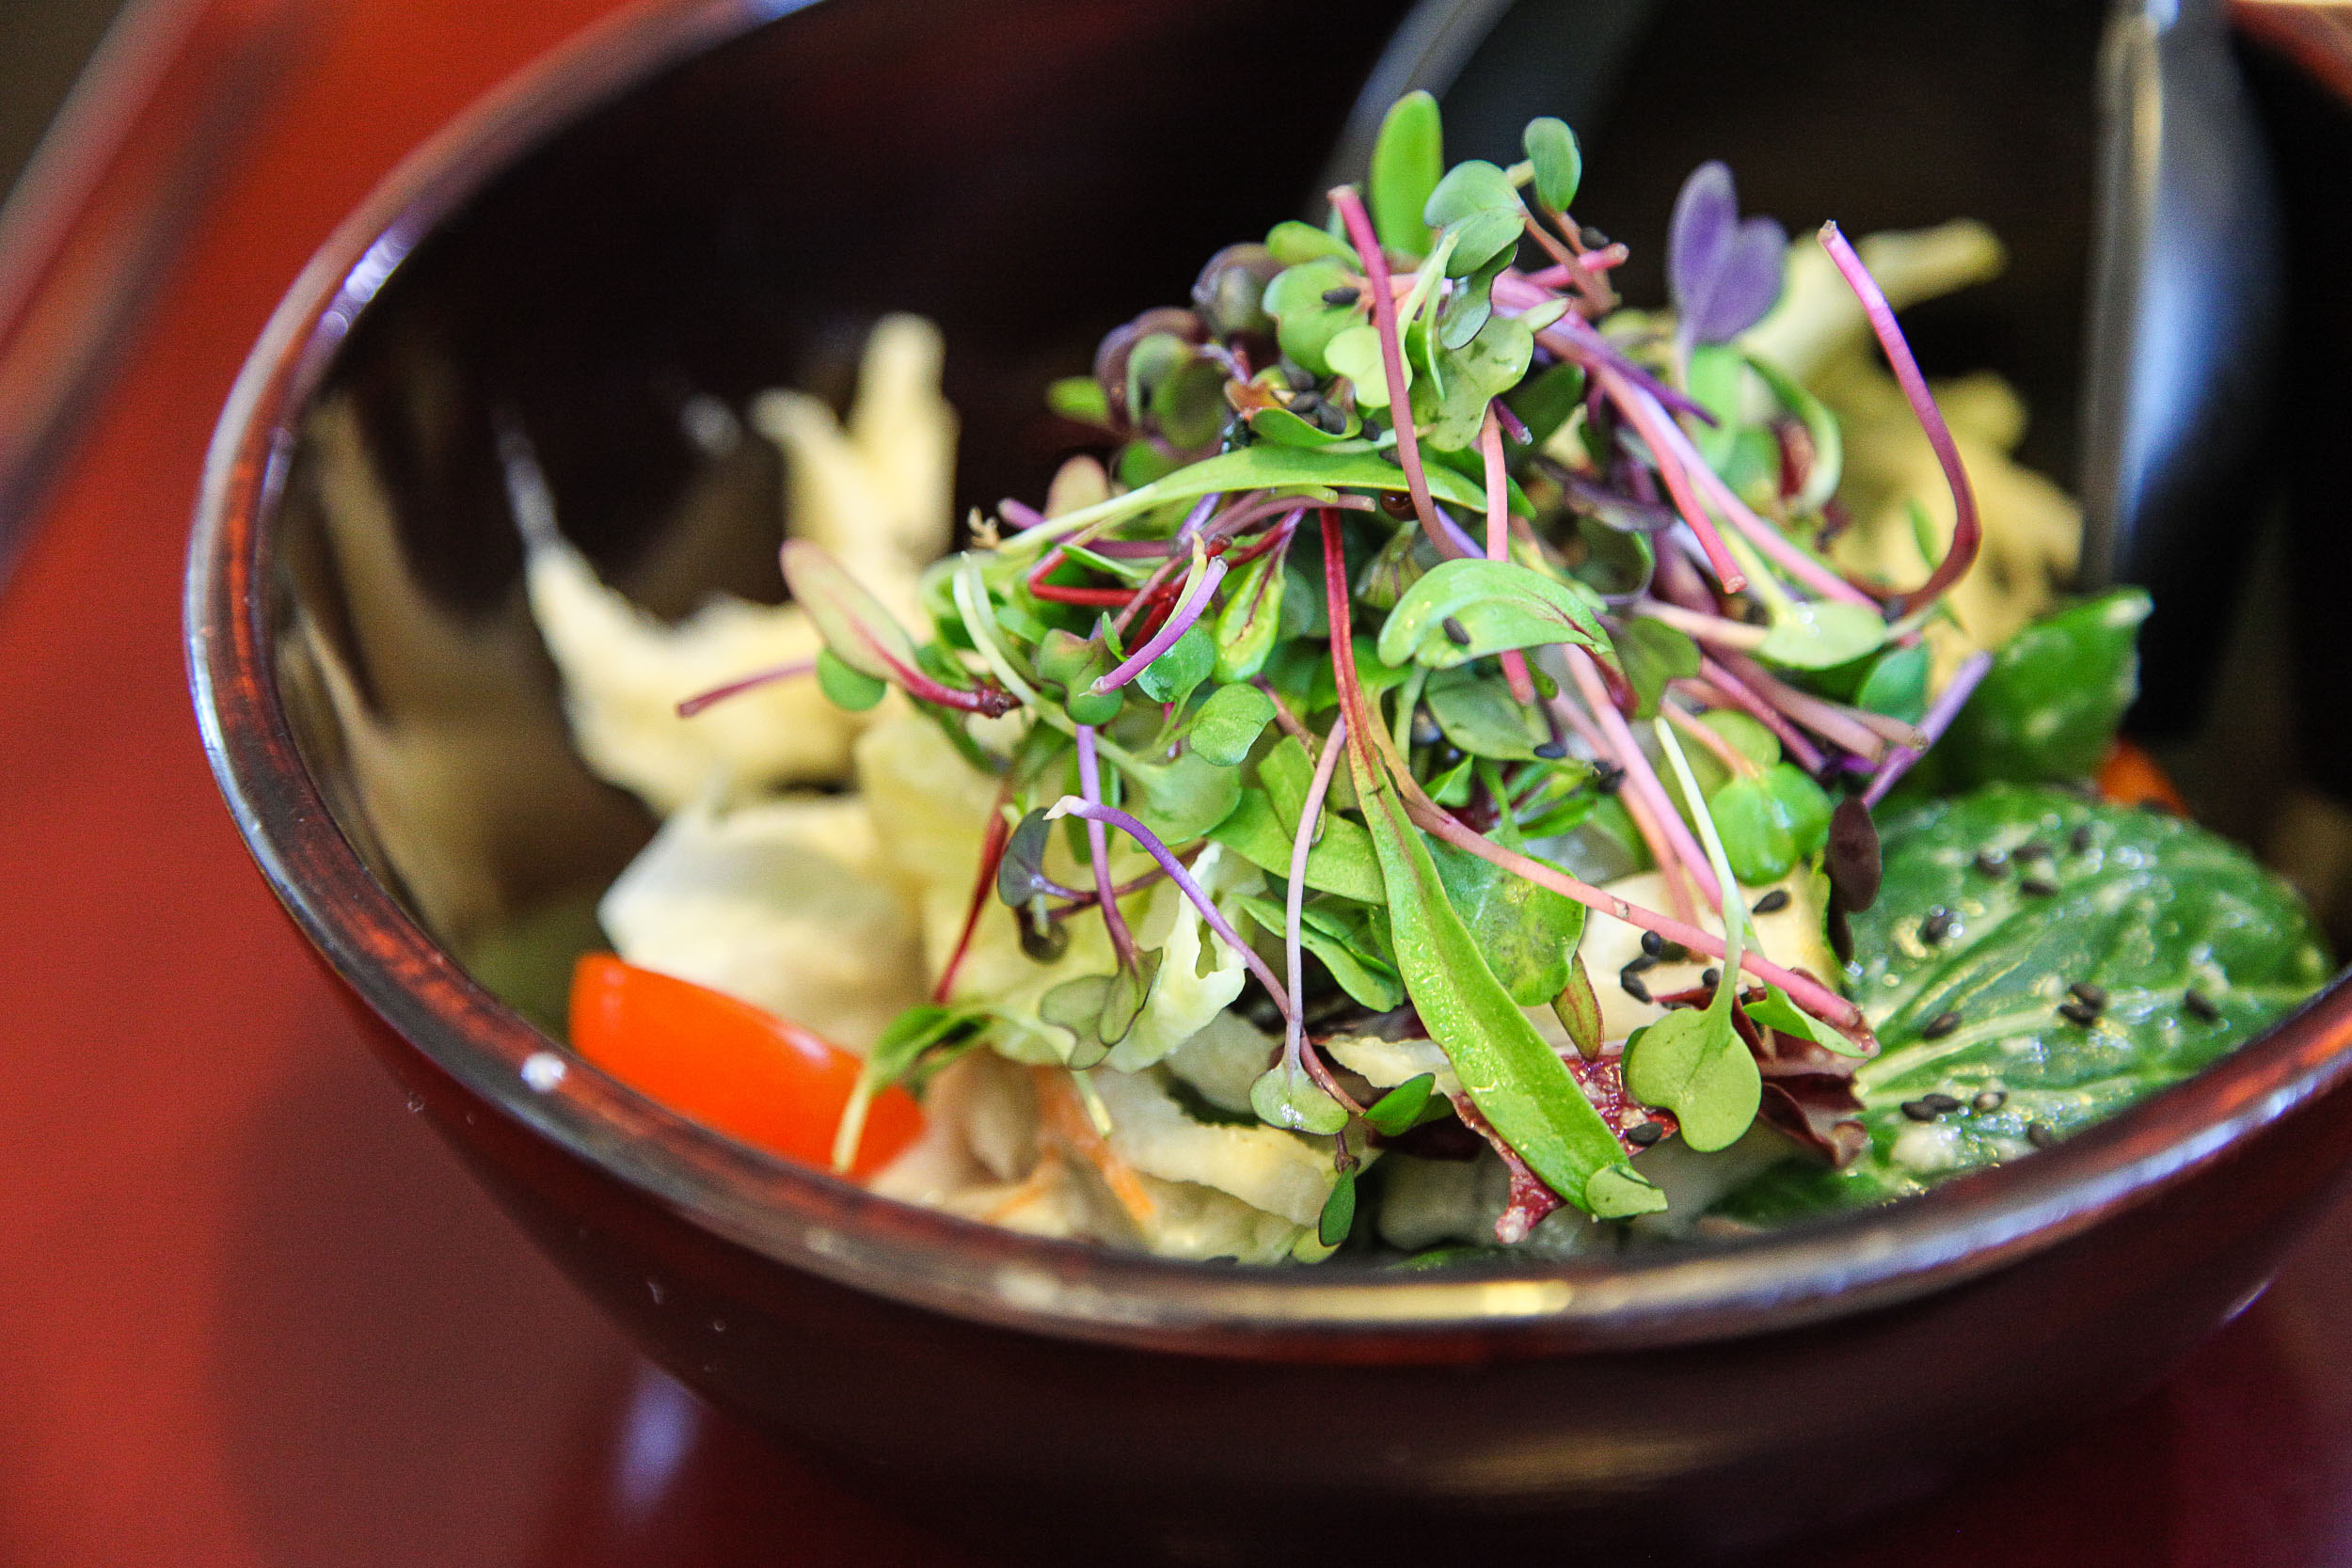 "Wild ""deodeok"" root mixed with seasonal vegetables and pine nut dressing (더덕샐러드 = Deodeok Salad)."